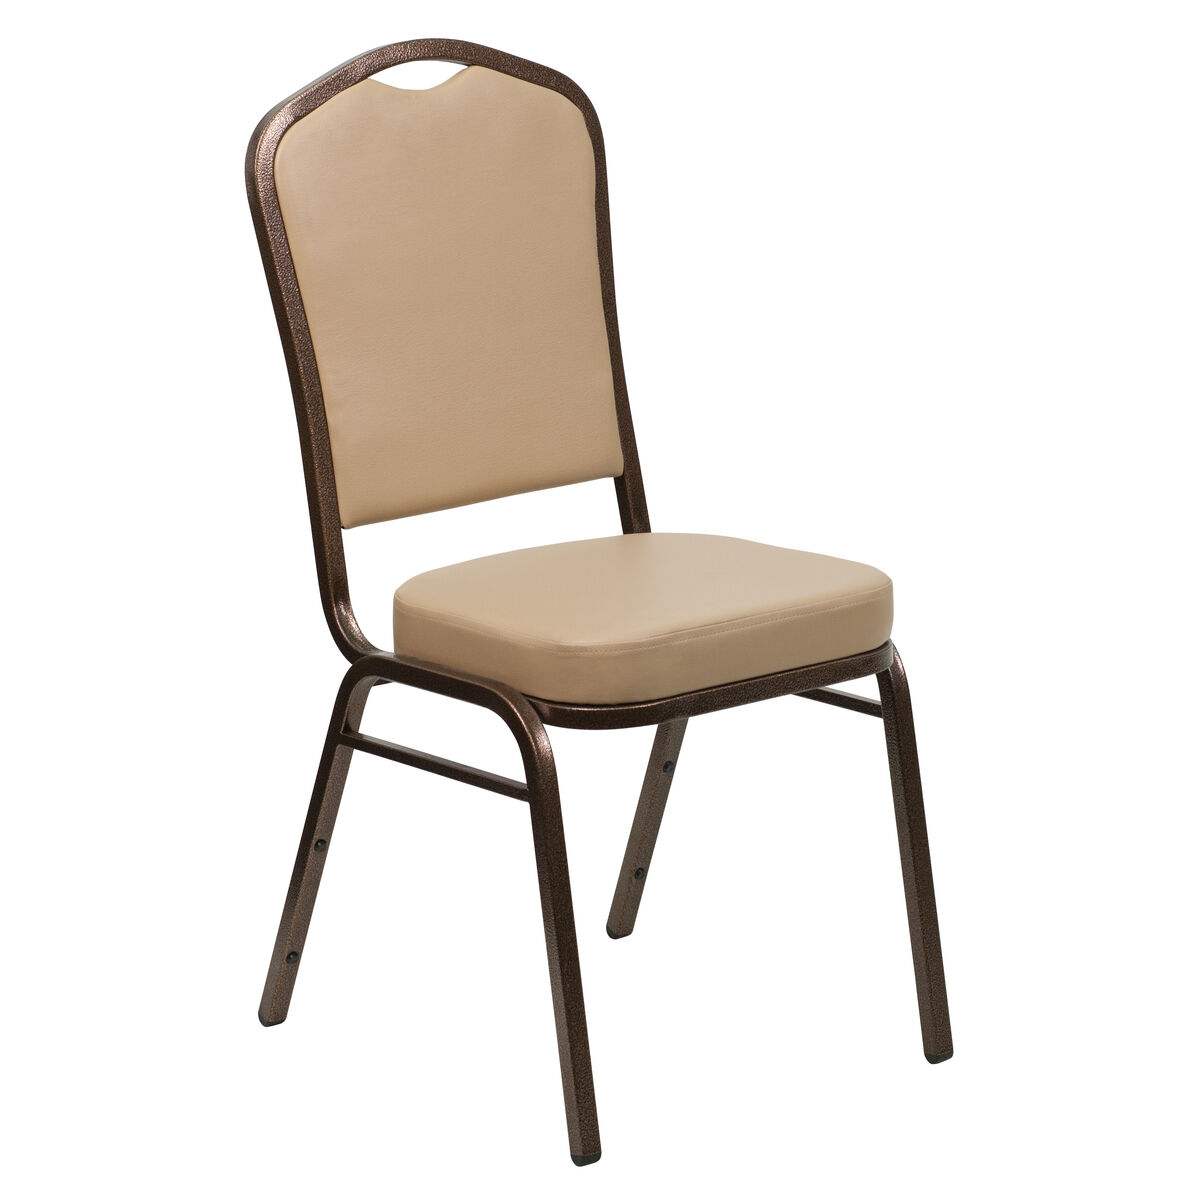 wood banquet chairs. Wood Banquet Chairs E